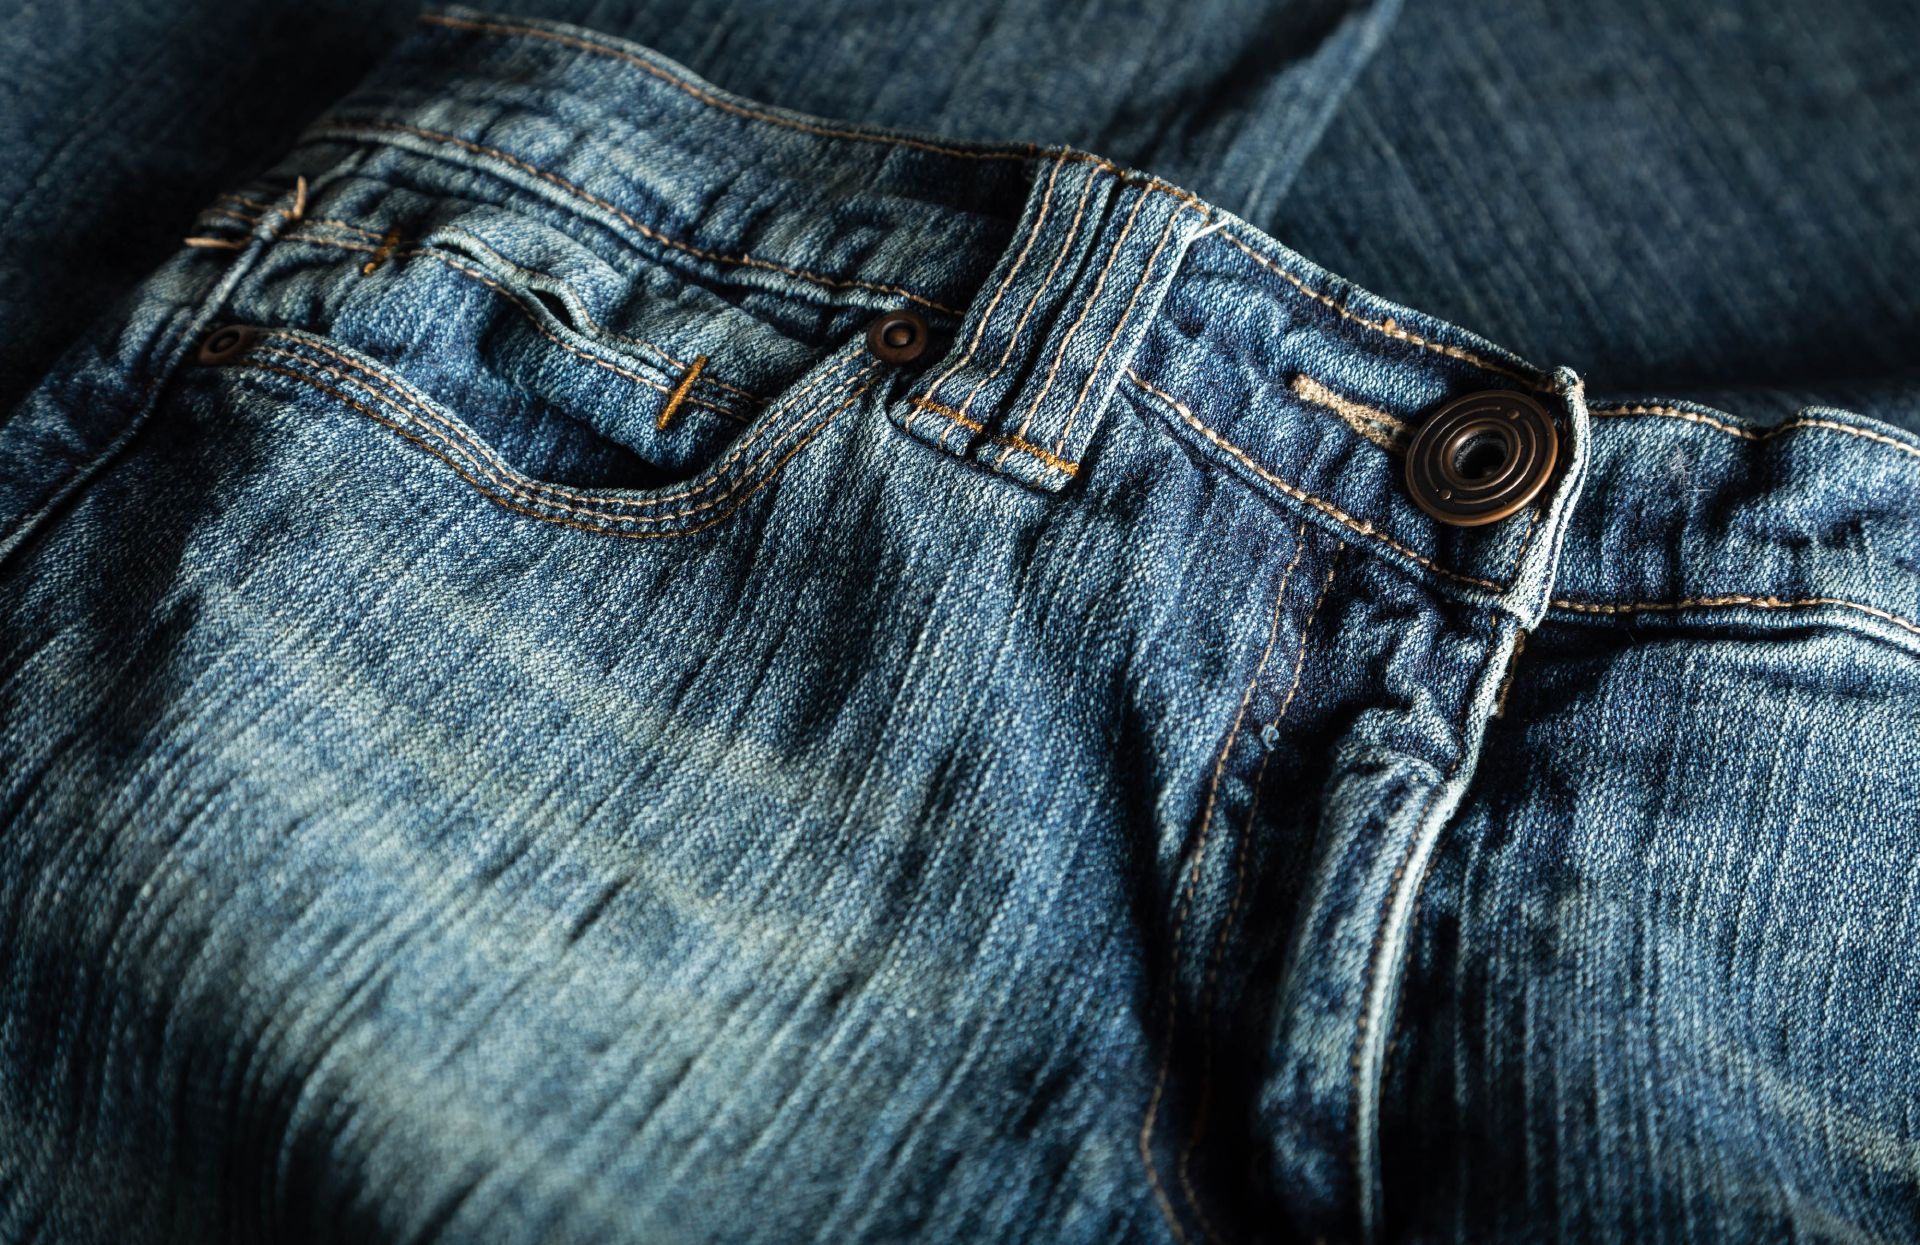 Lasers are used to apply patterns and effects to jeans.